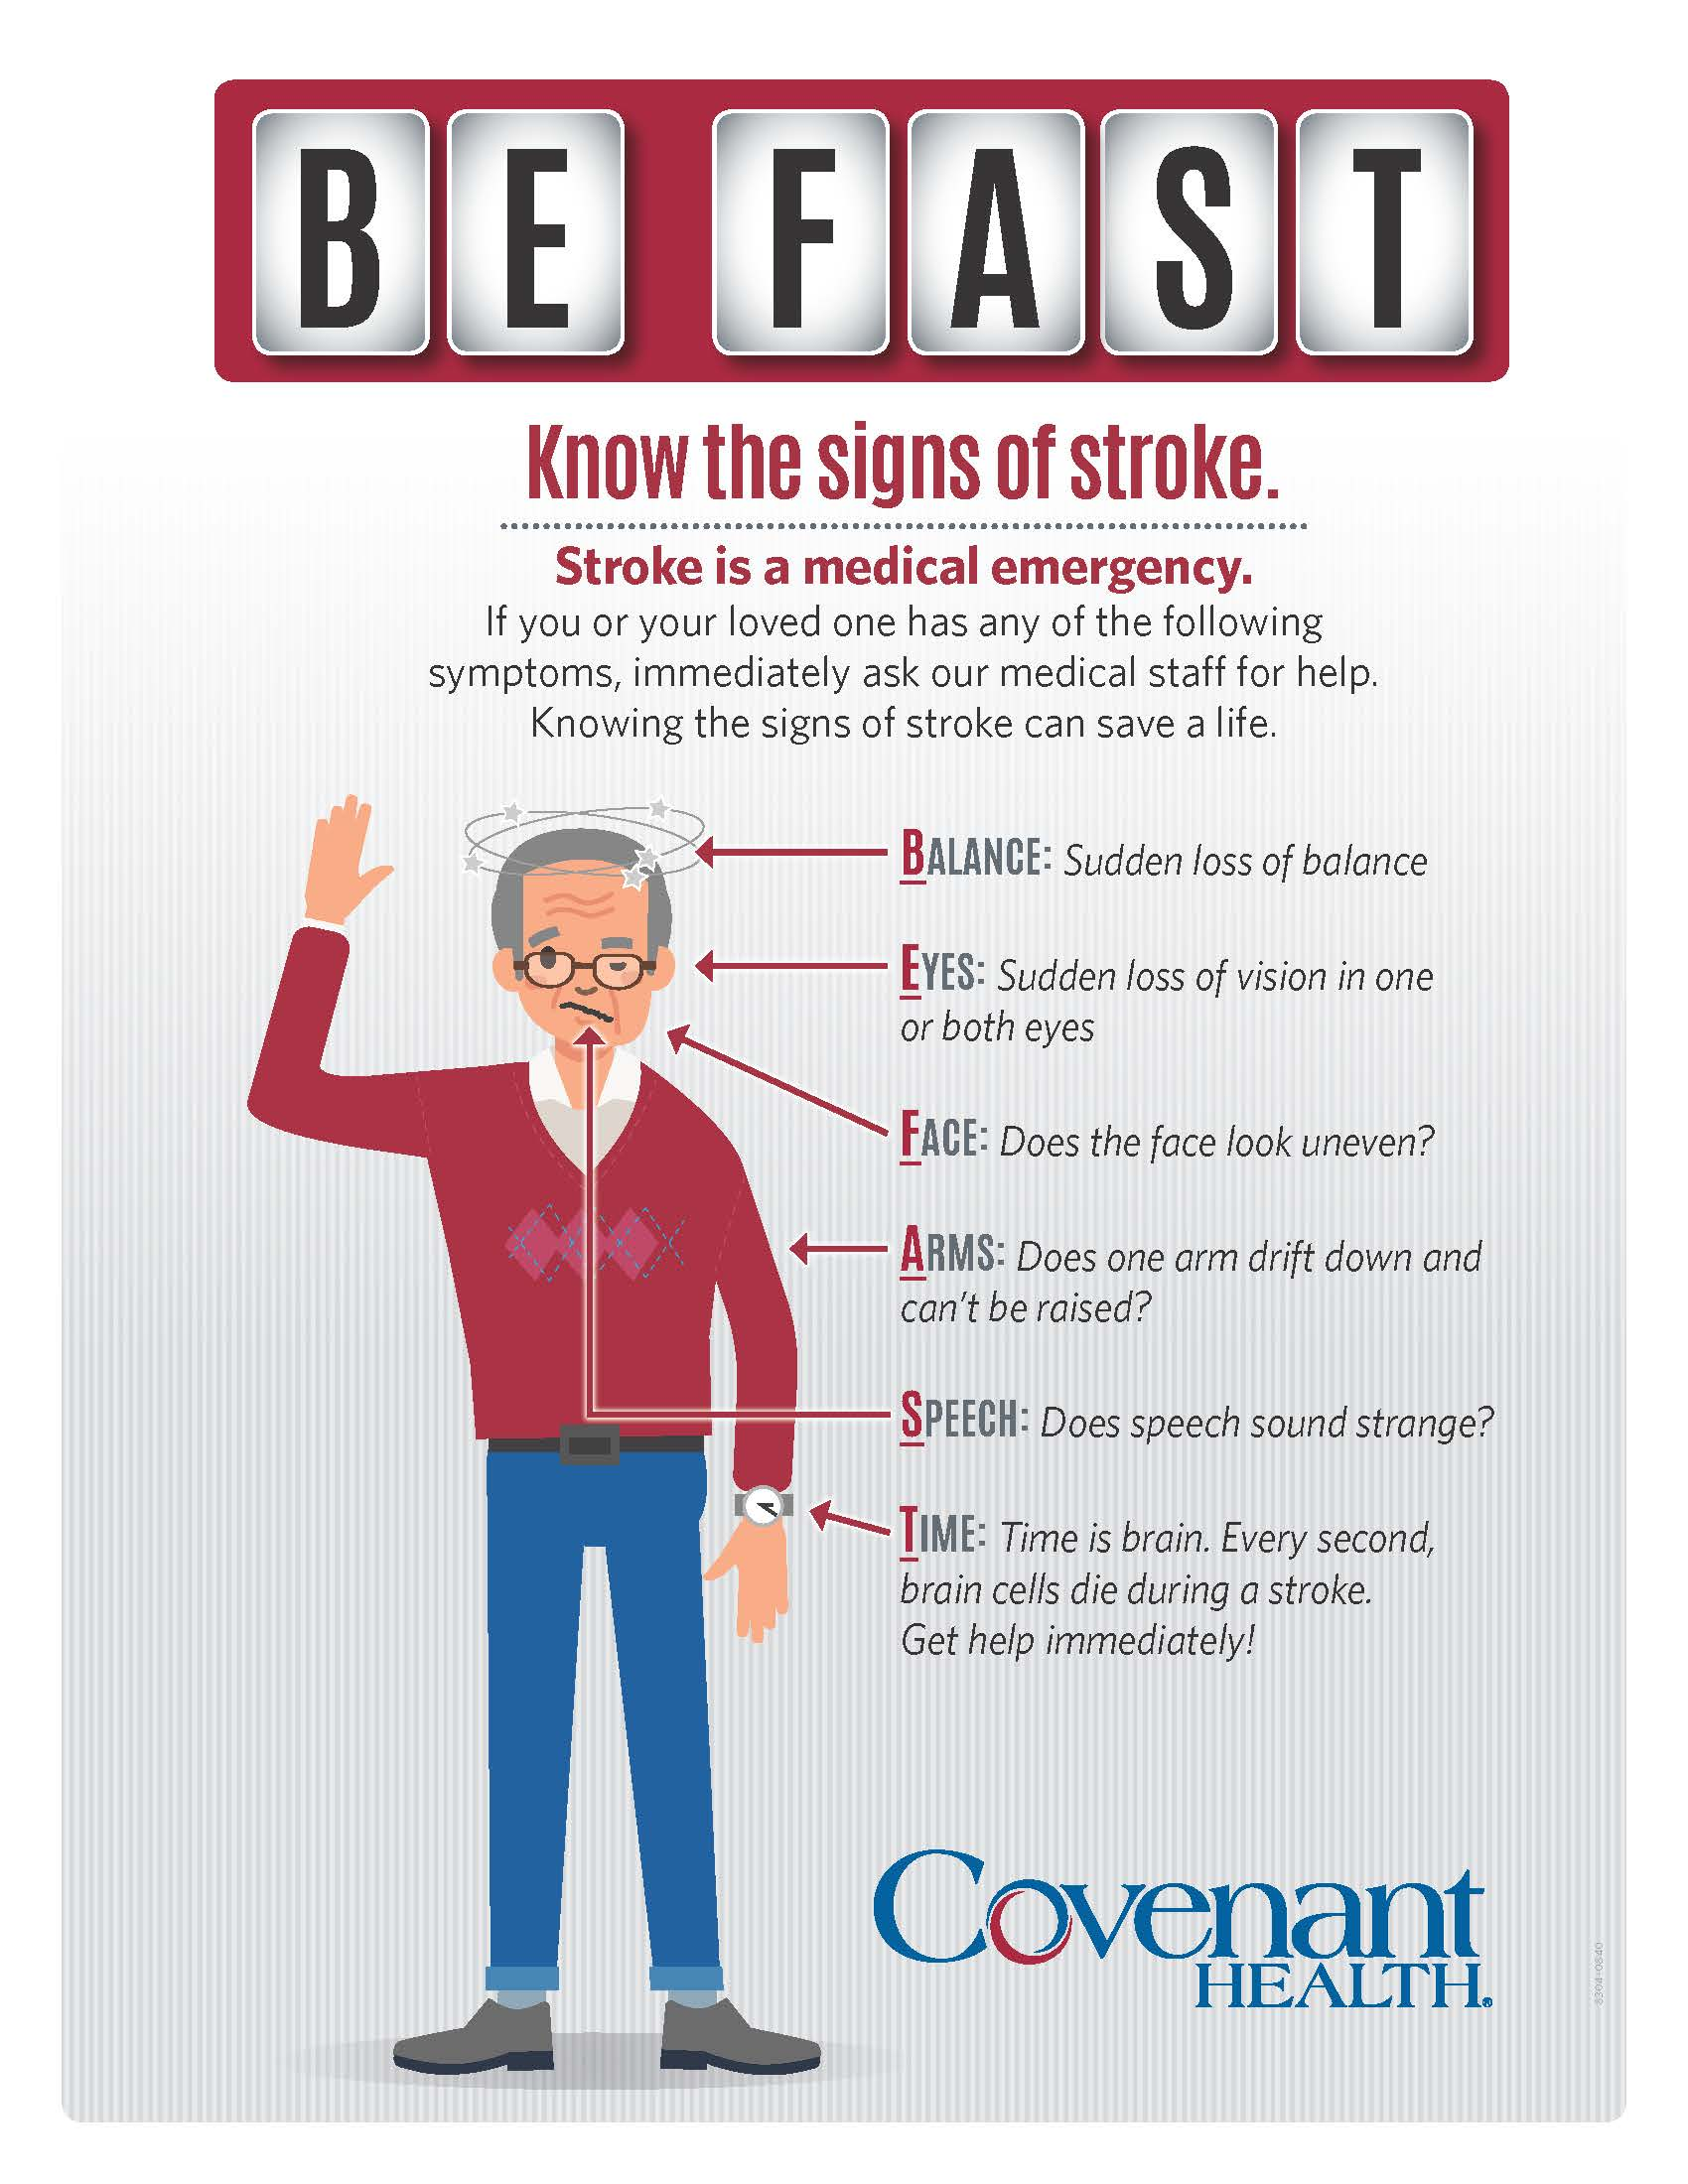 Know the signs of stroke